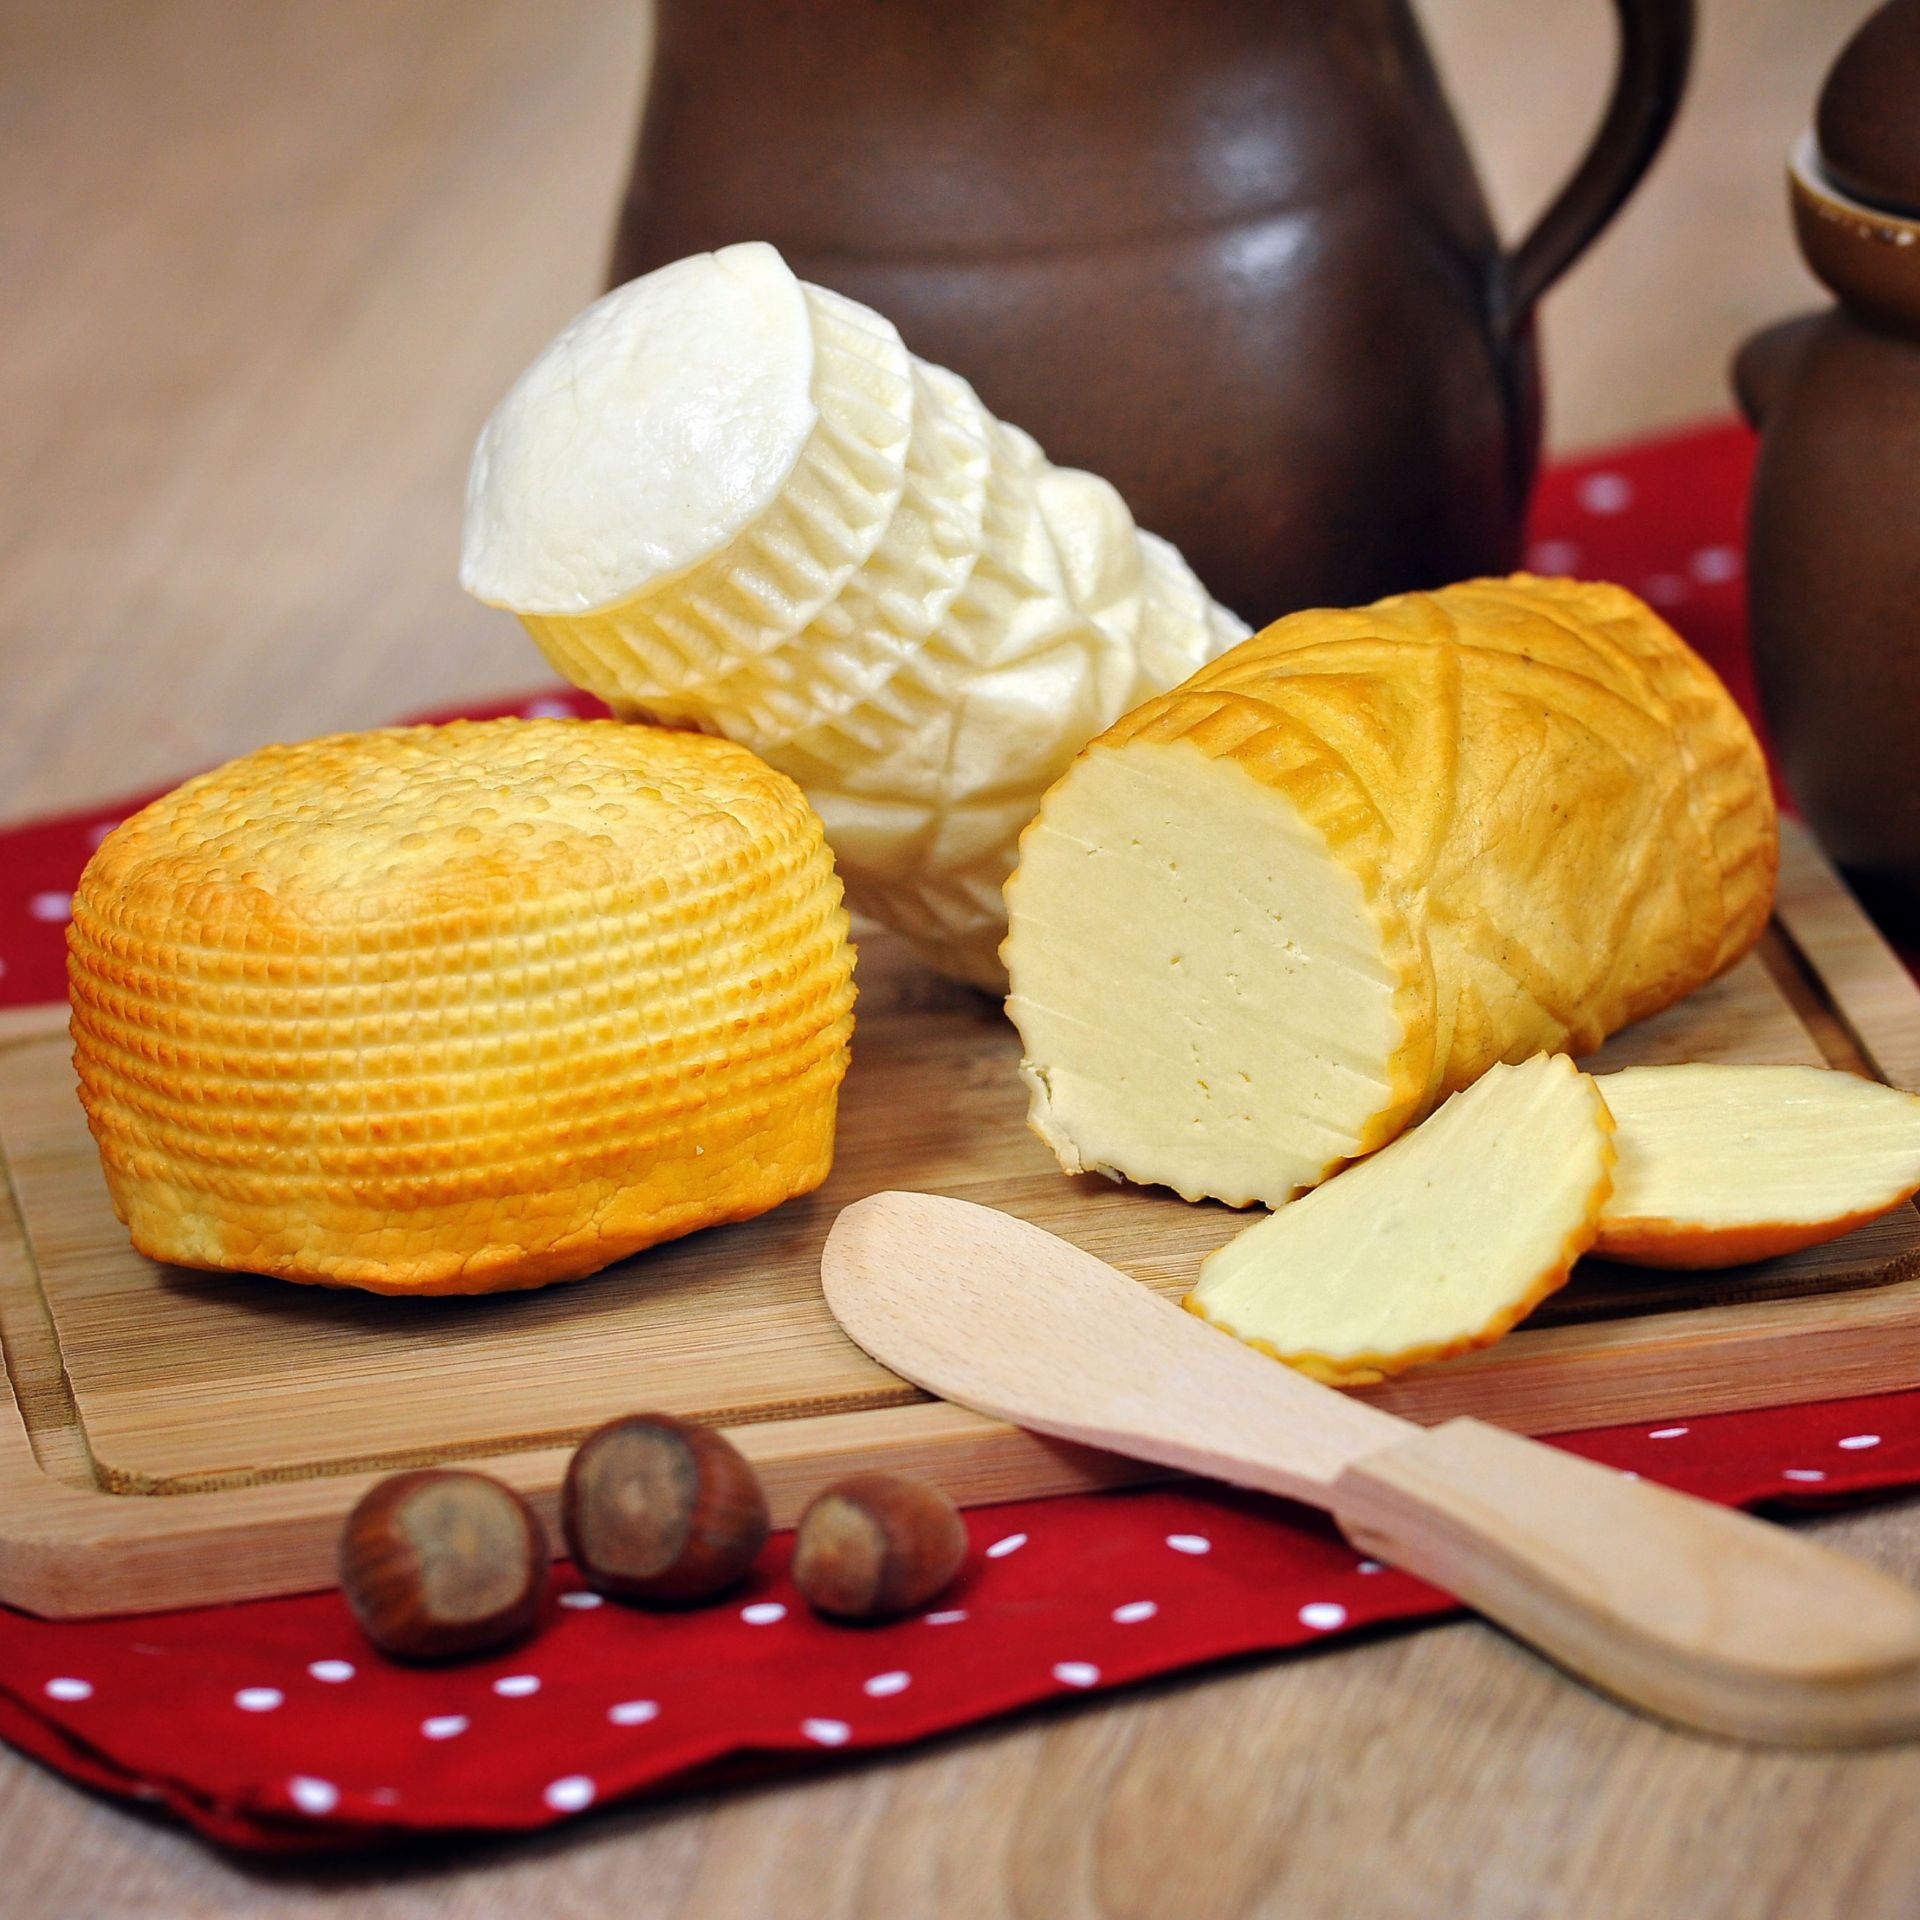 Poland's National Fund cheese